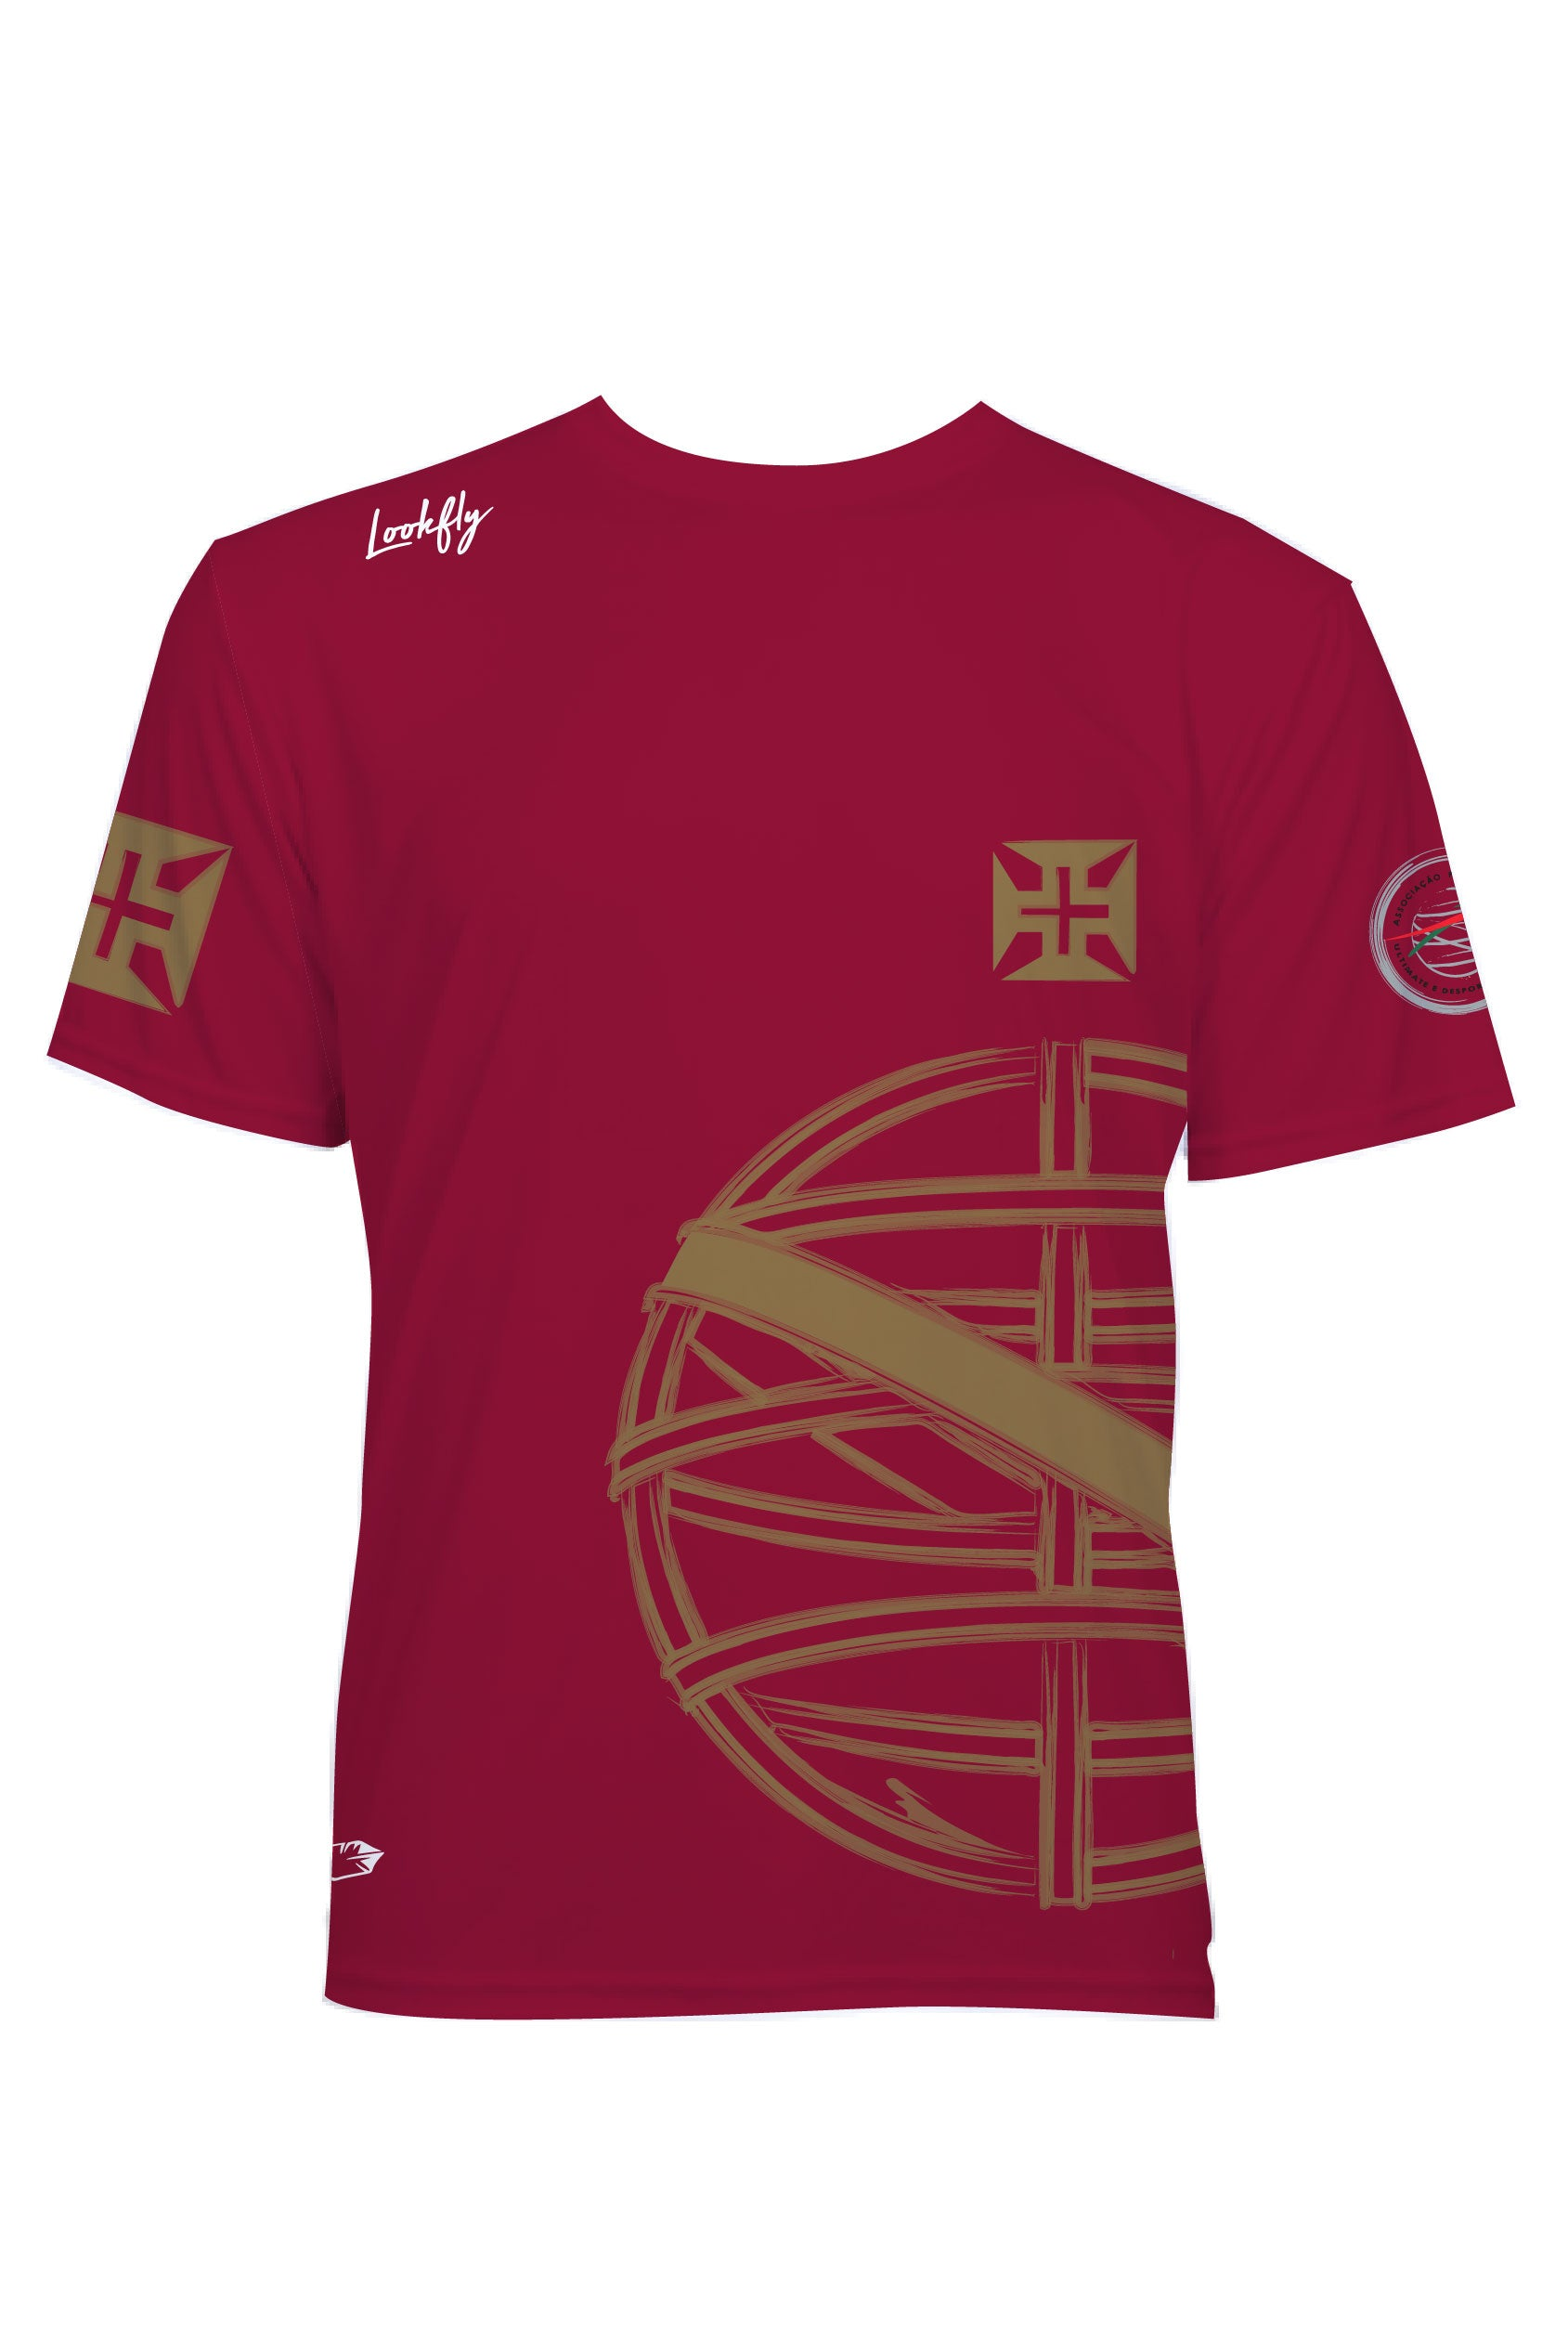 Portugal 2019 Short Sleeve Jerseys